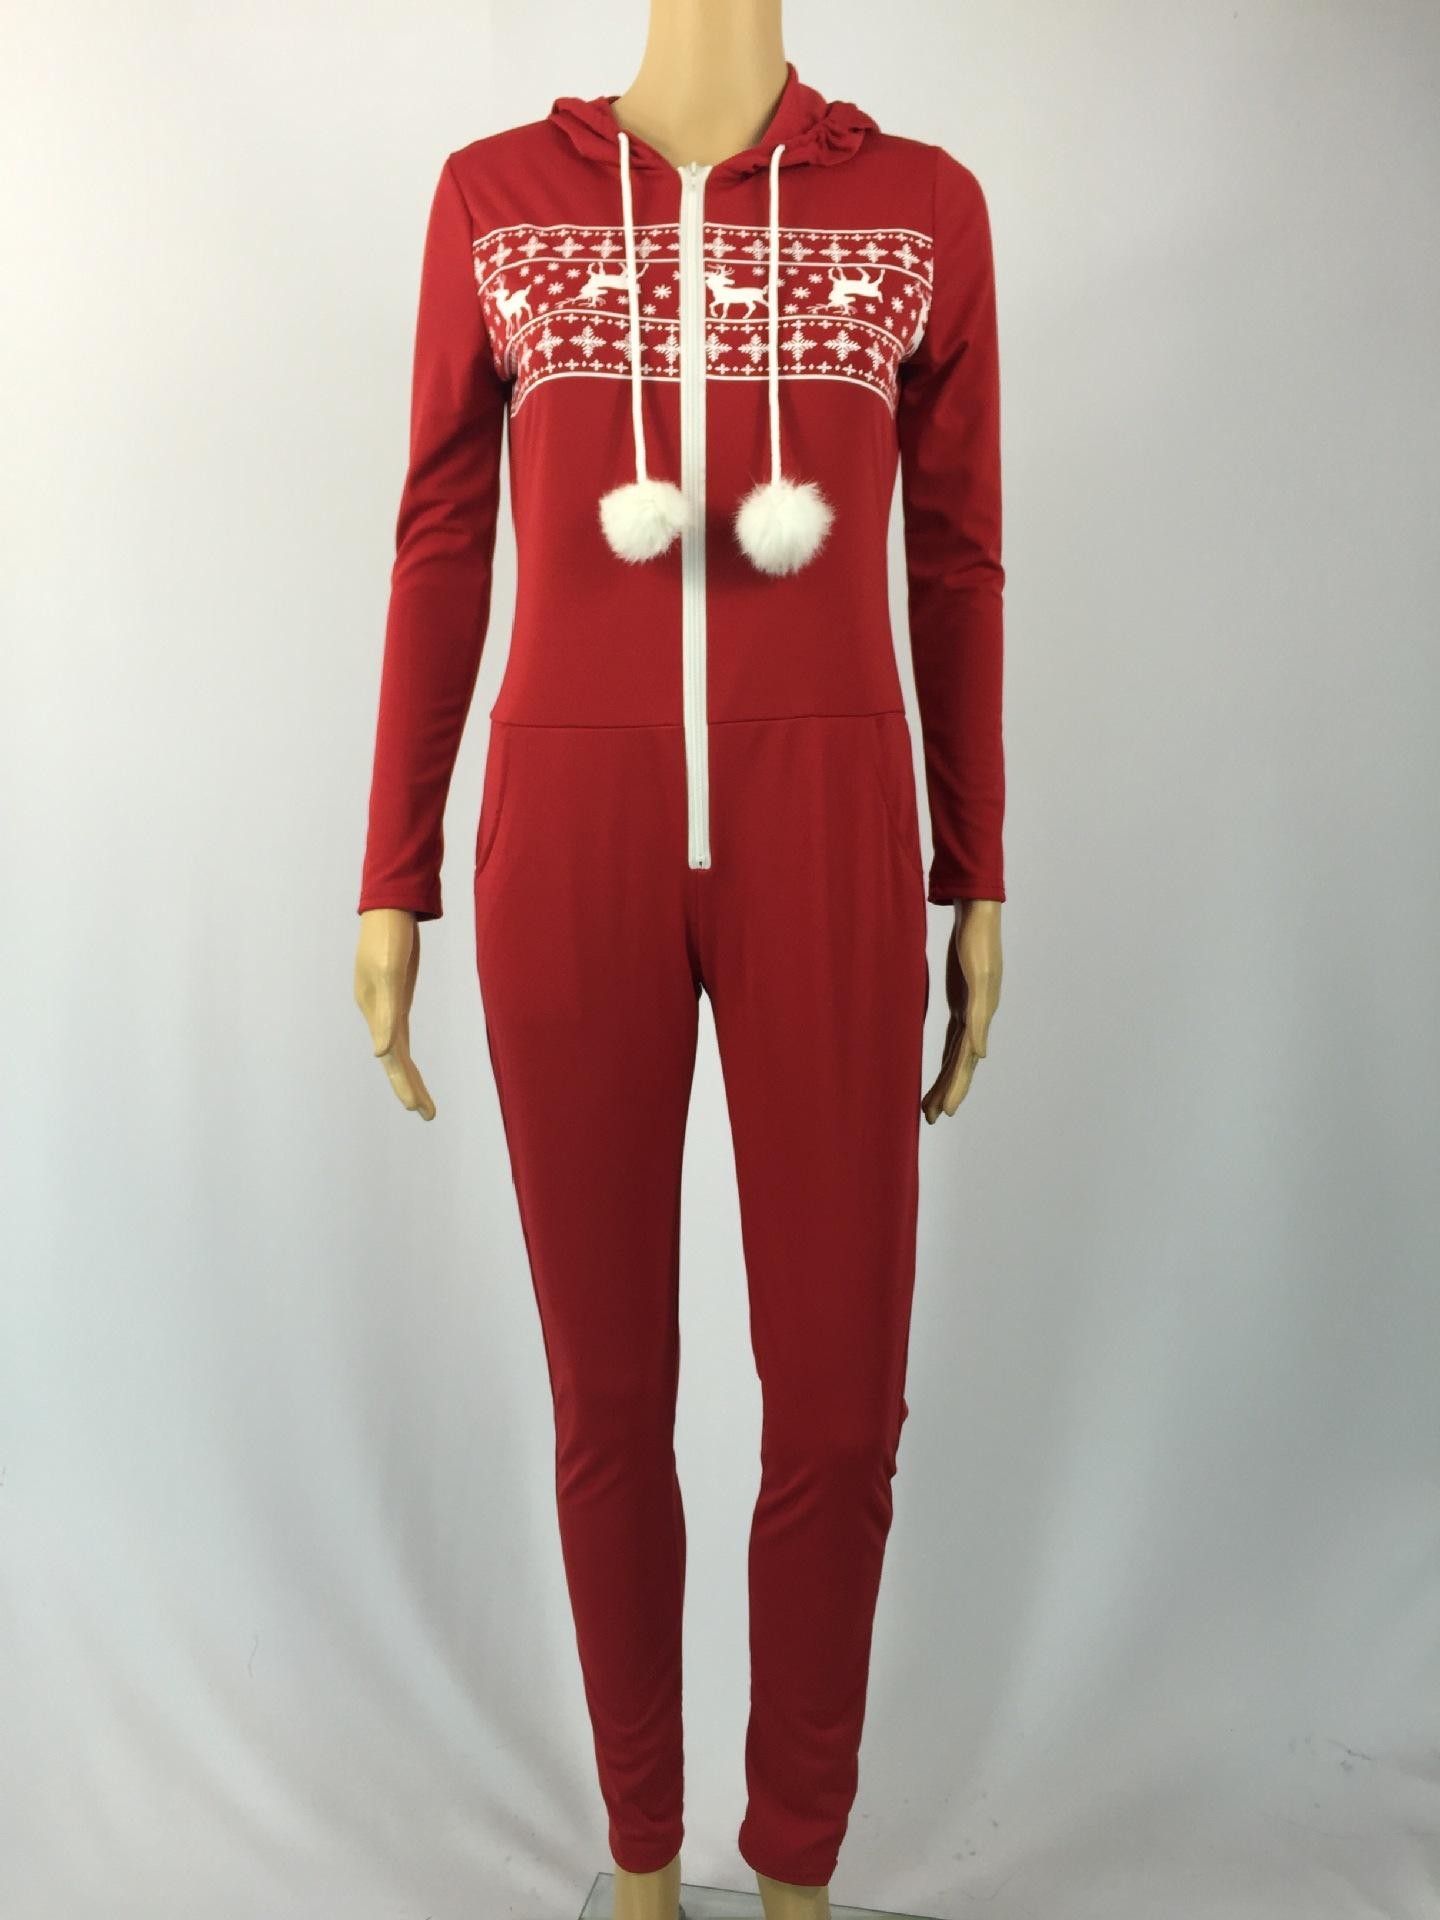 Christmas Jumpsuit Womens.Wholesale Europe And America Brand Fashion Women S Clothing Red Christmas Tight Leg Movement Leisure Jumpsuits